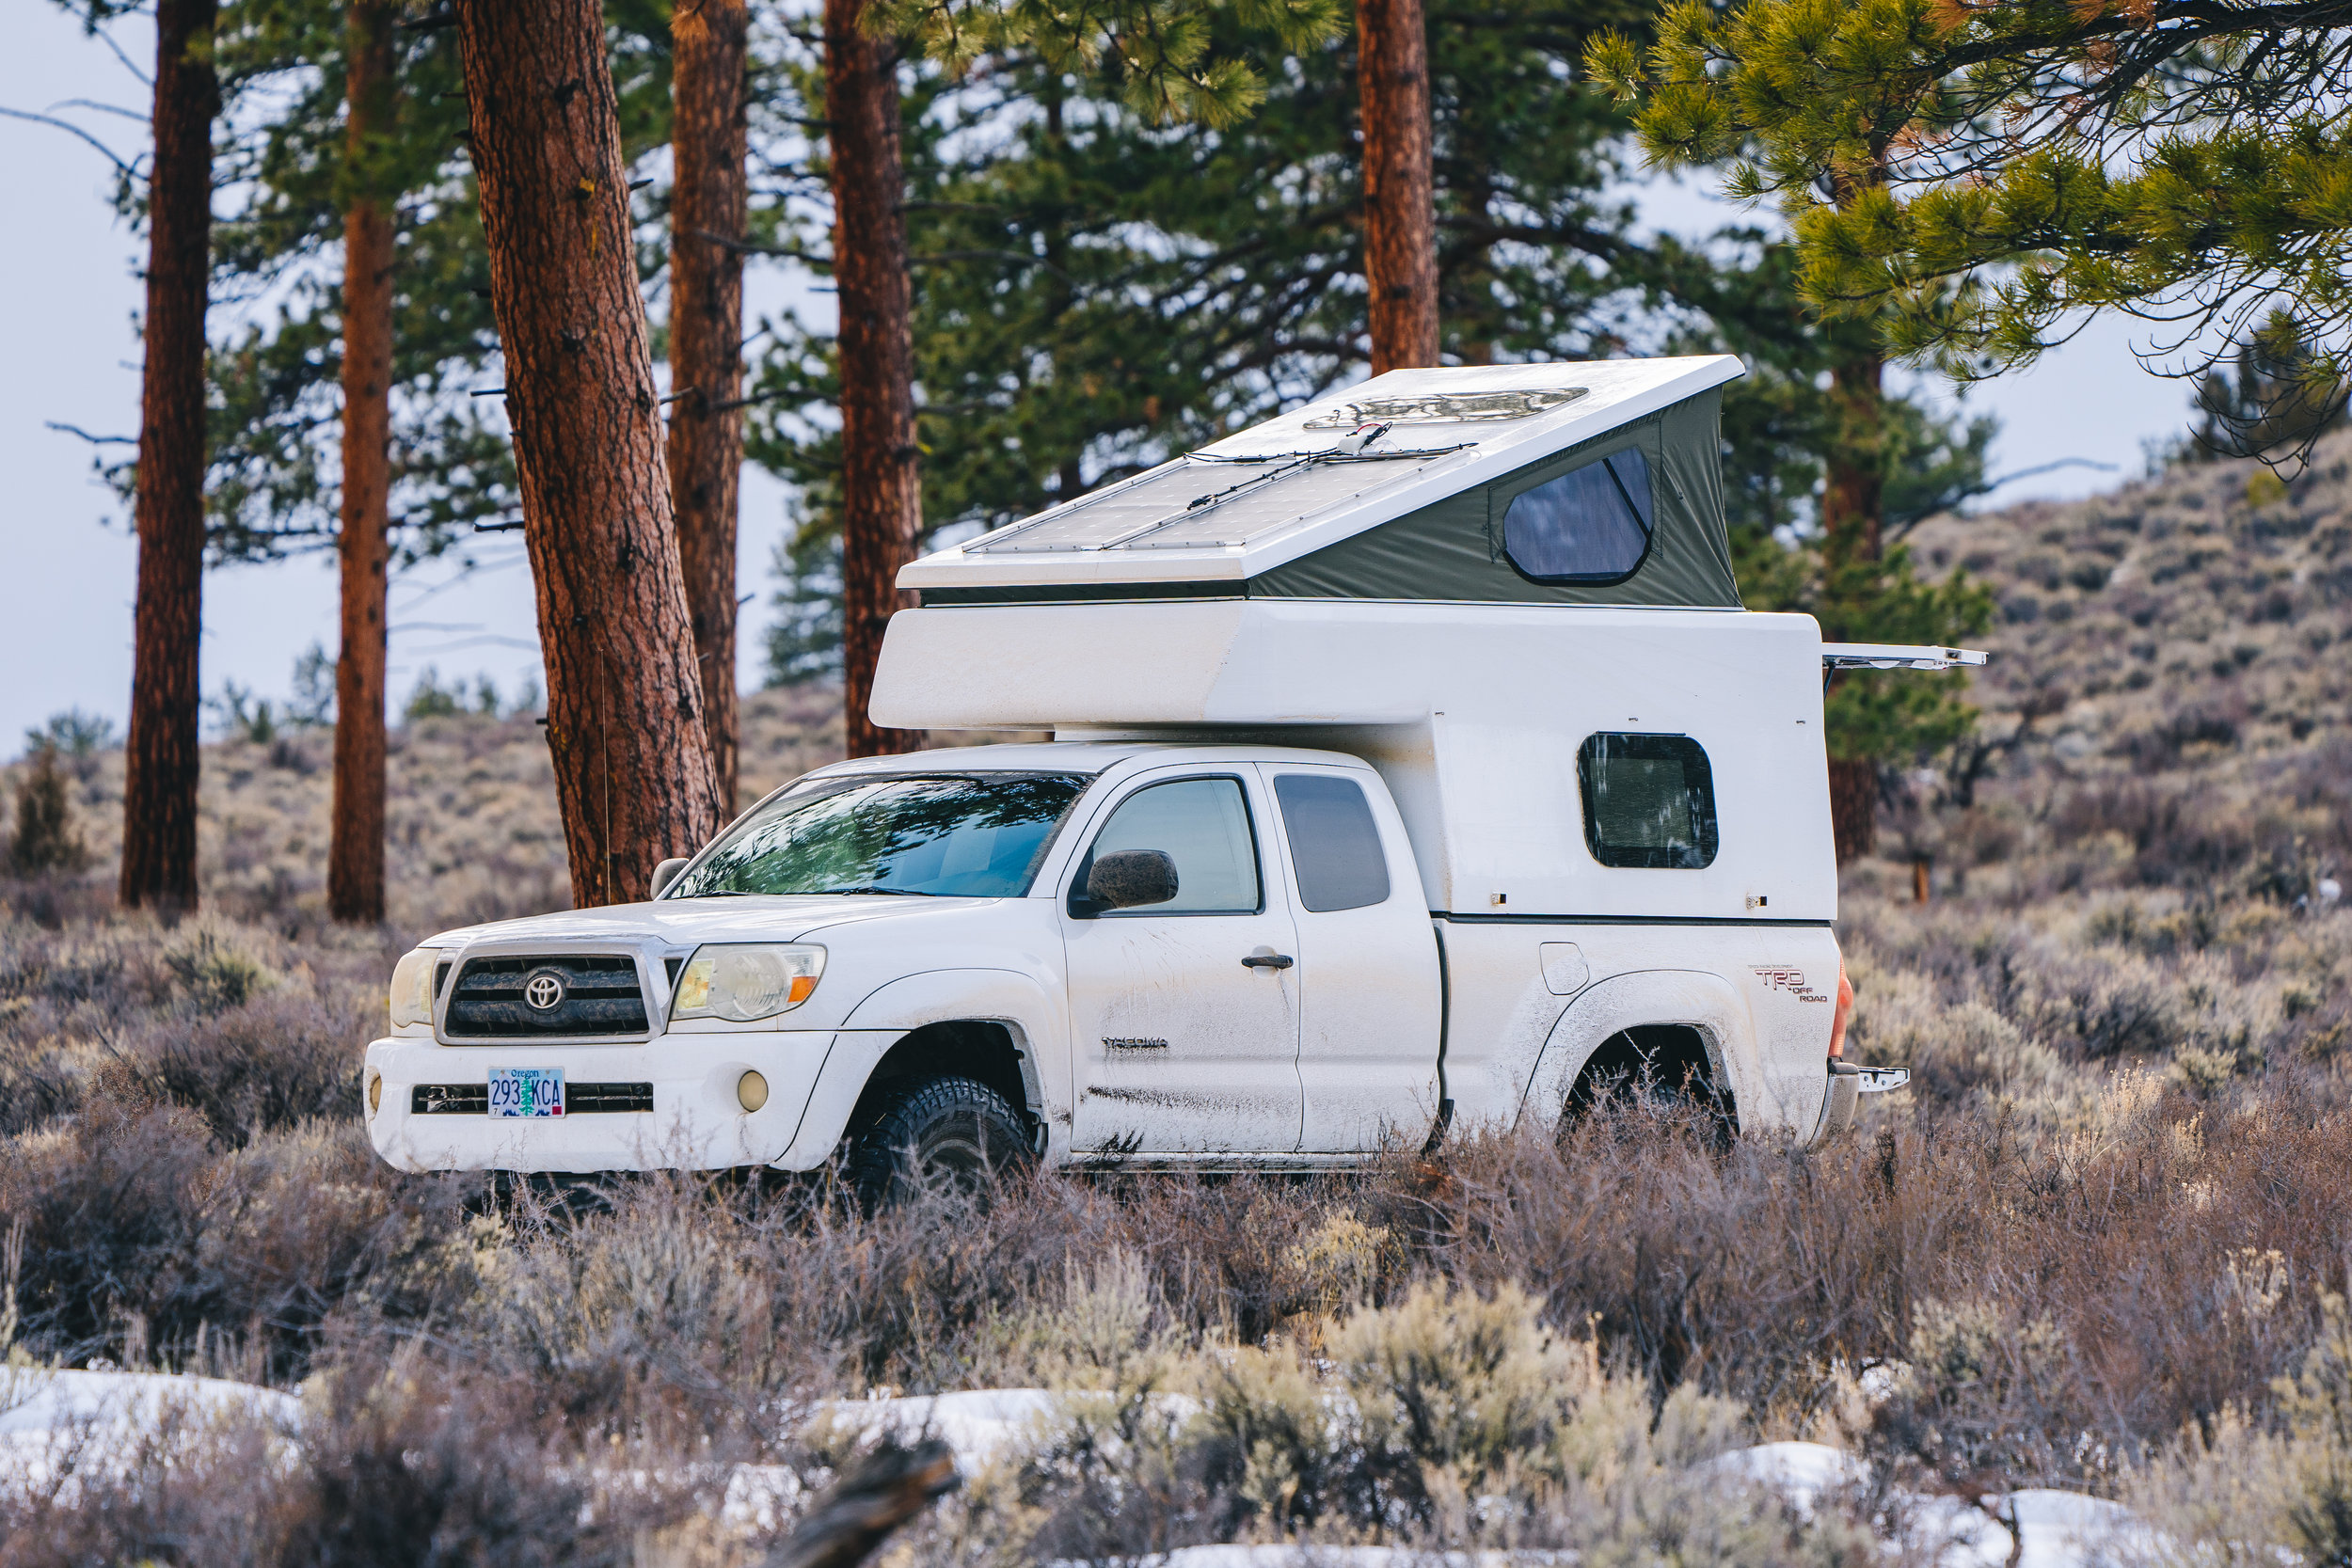 Michael Gorski's DIY Toyota Tacoma camper three quarter shot